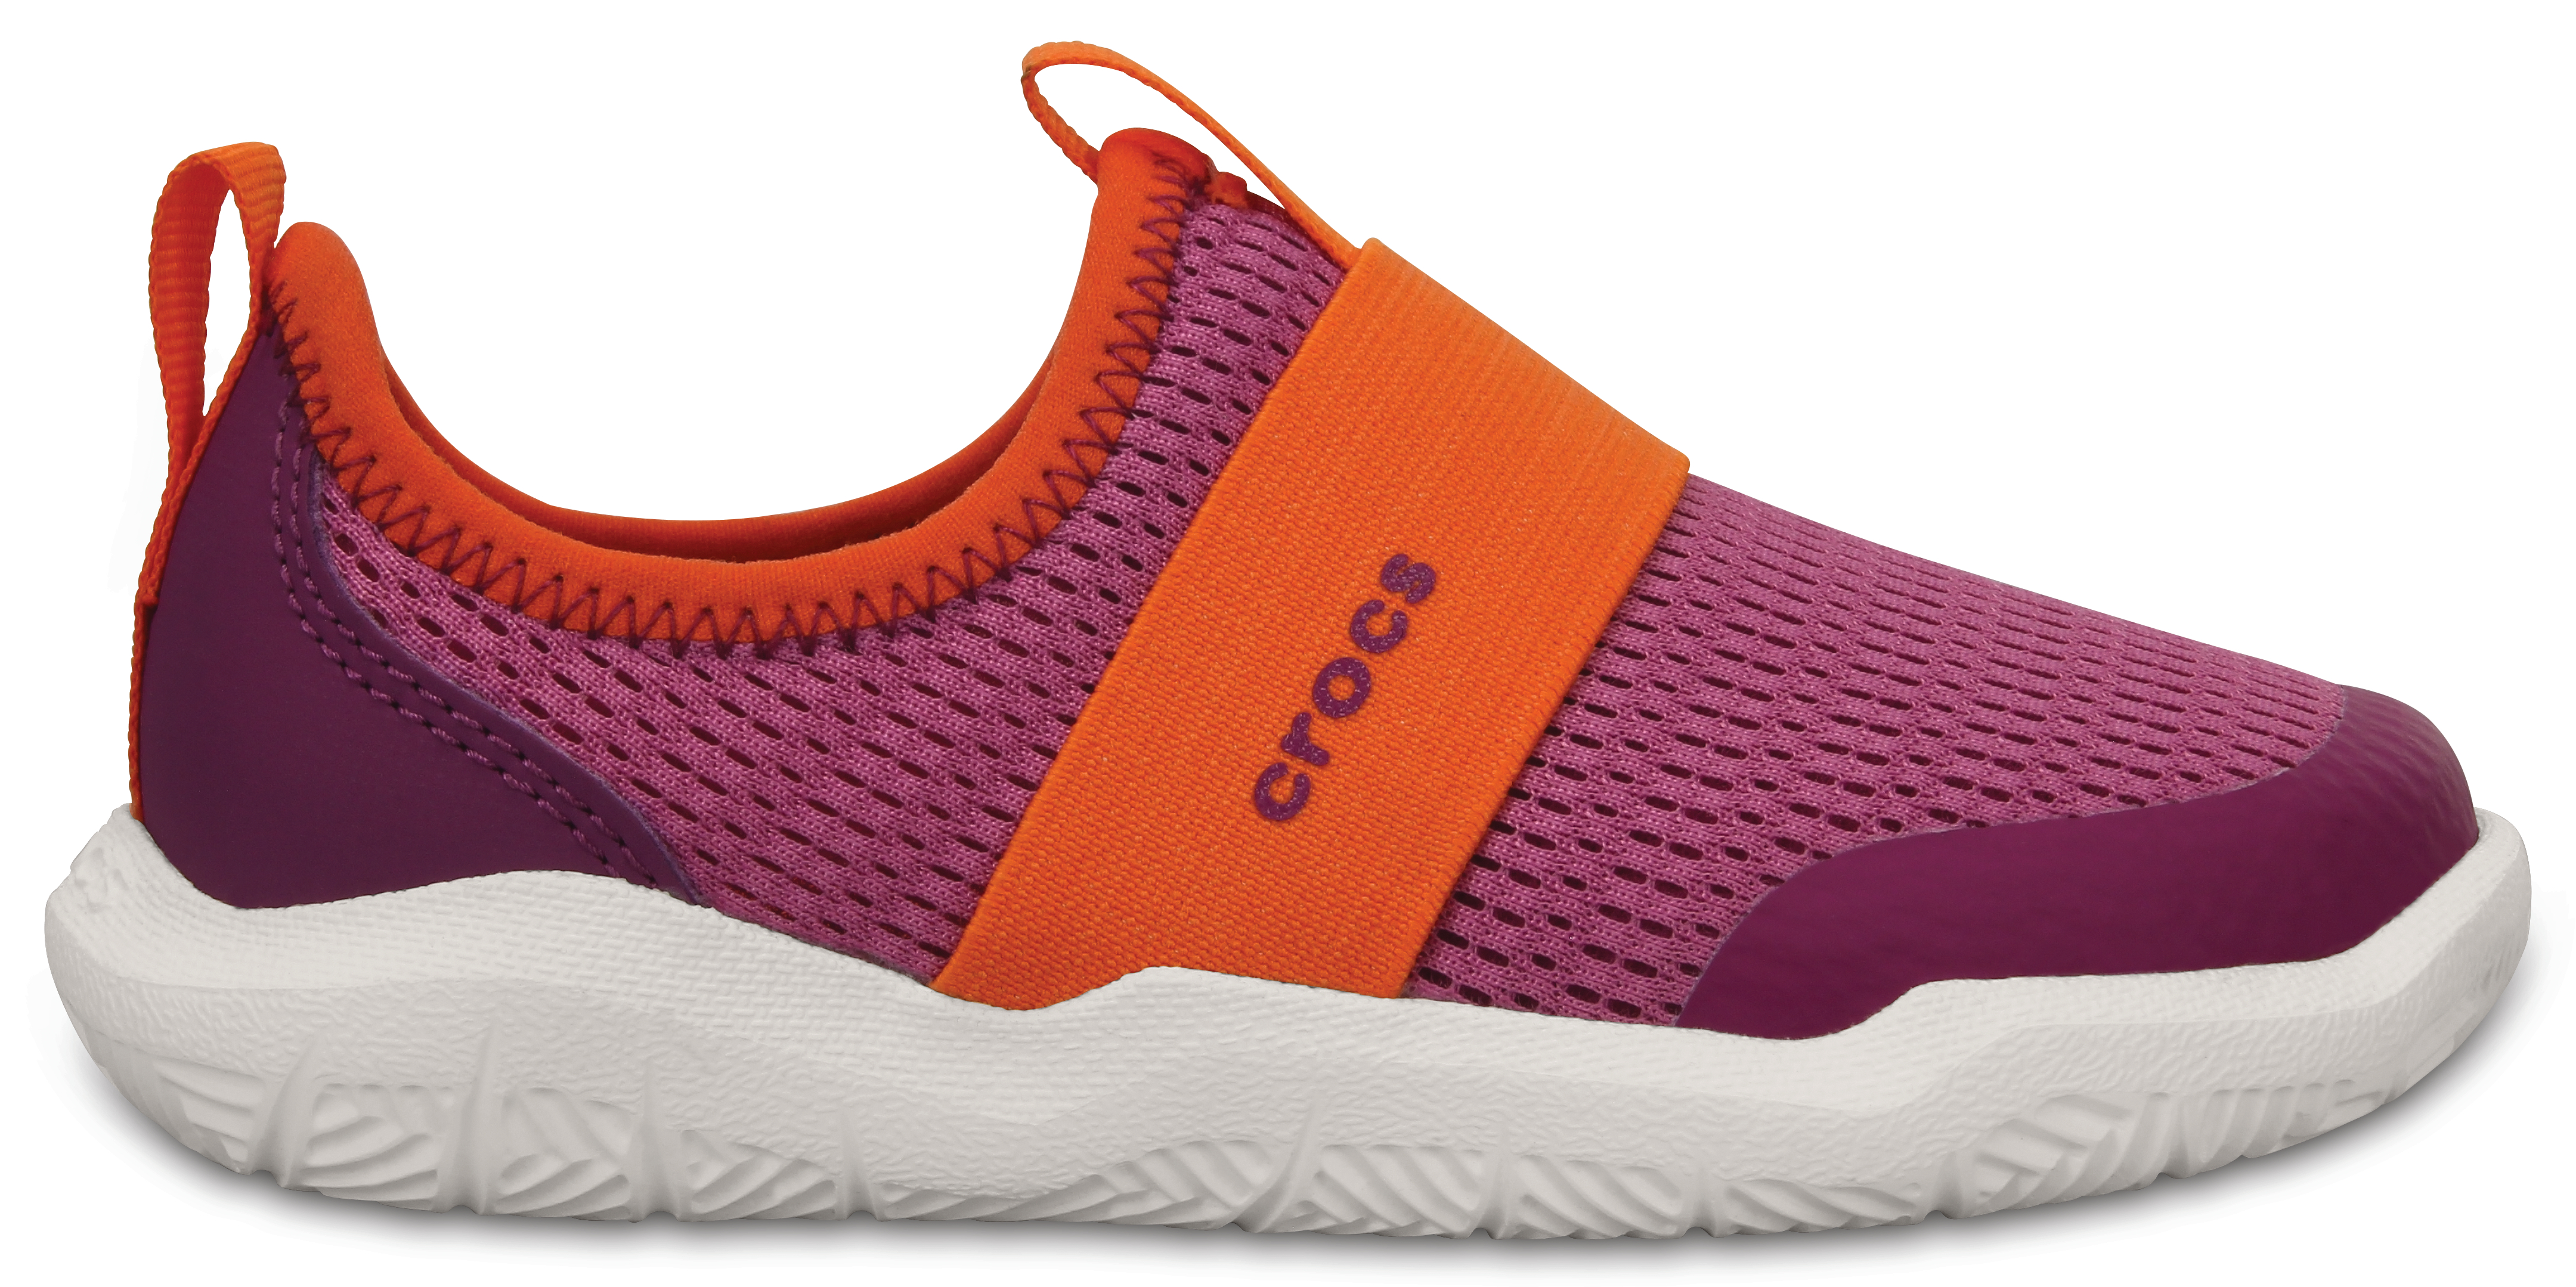 Crocs Swiftwater Easy-on Shoe K - Party Pink/Tangerine C10